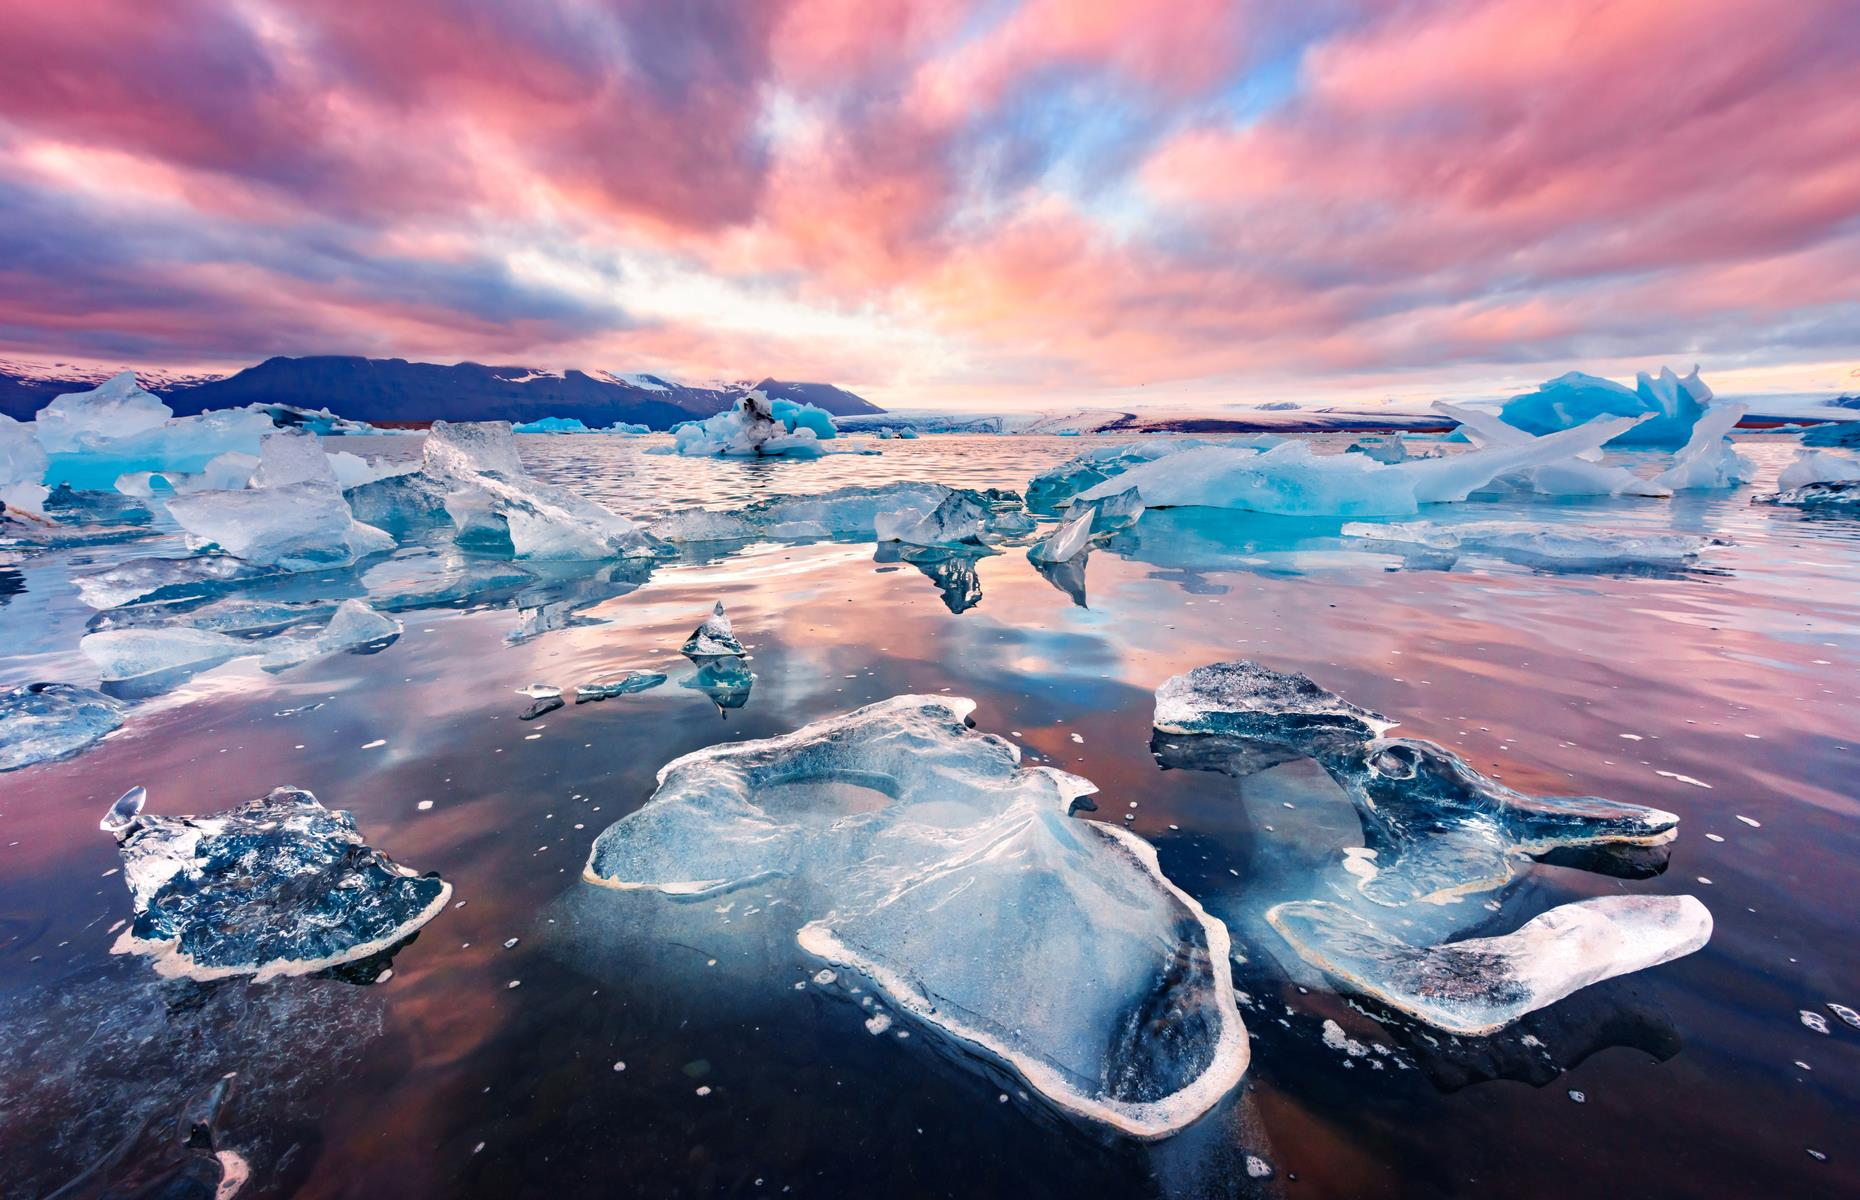 Slide 28 of 31: To the Land of Fire and Ice: Iceland. There you'll find the 5,460-square-mile (14,141sq km) Vatnajökull National Park, the largest in Europe. A UNESCO World Heritage Site that can be reached in around four hours from the capital city, Reykjavik, this chilly playground is found in south Iceland around the Vatnajökull glacier, which itself covers 8% of Iceland's land mass.